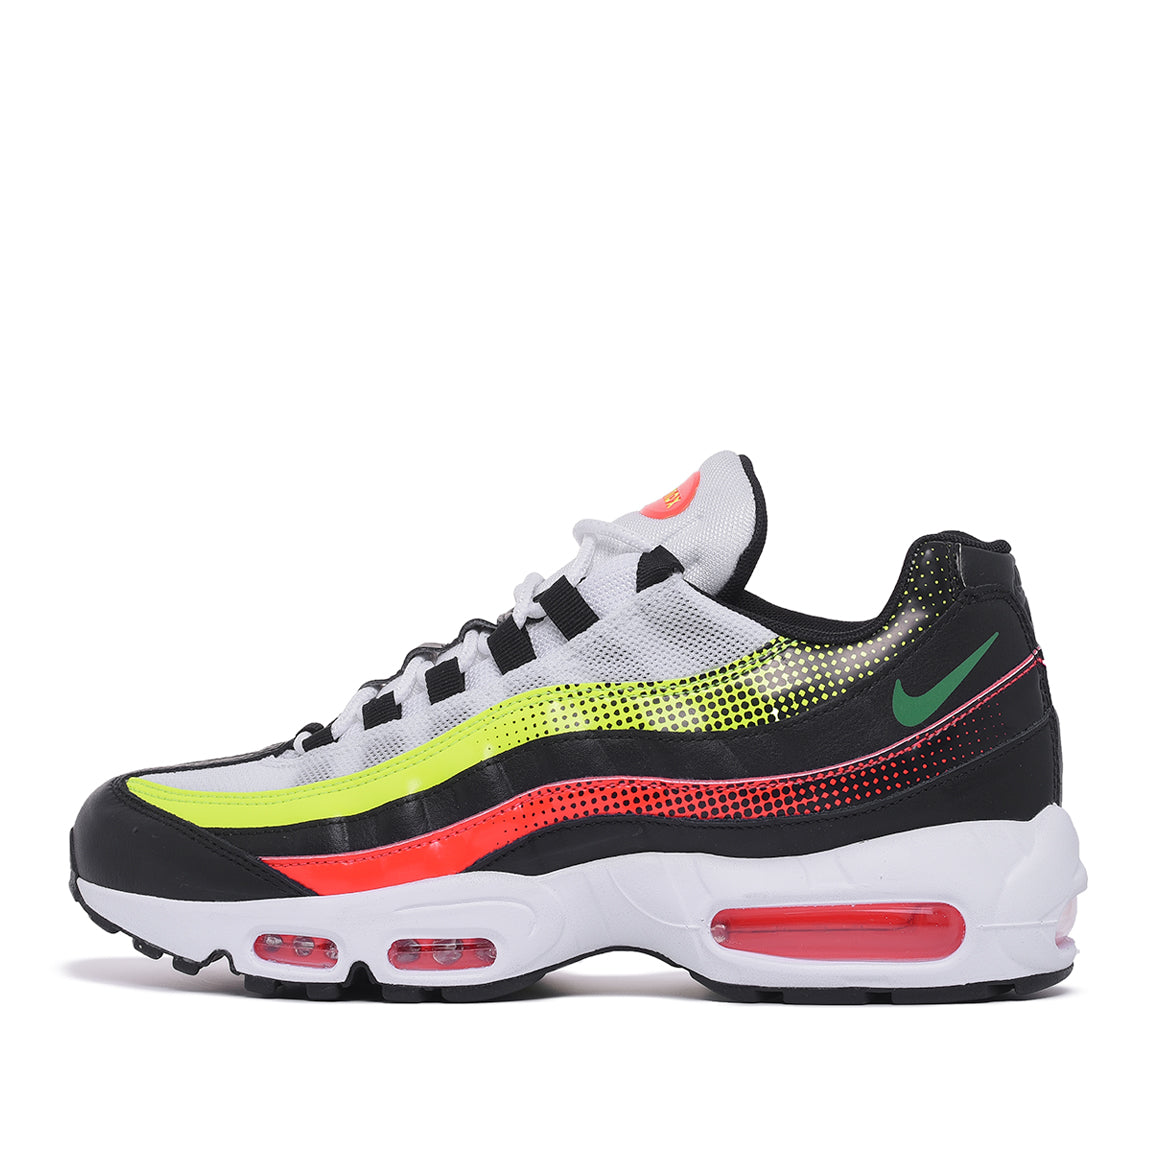 quality design d69b1 4787d AIR MAX 95 SE - BLACK   BRIGHT CRIMSON   VOLT   City Blue